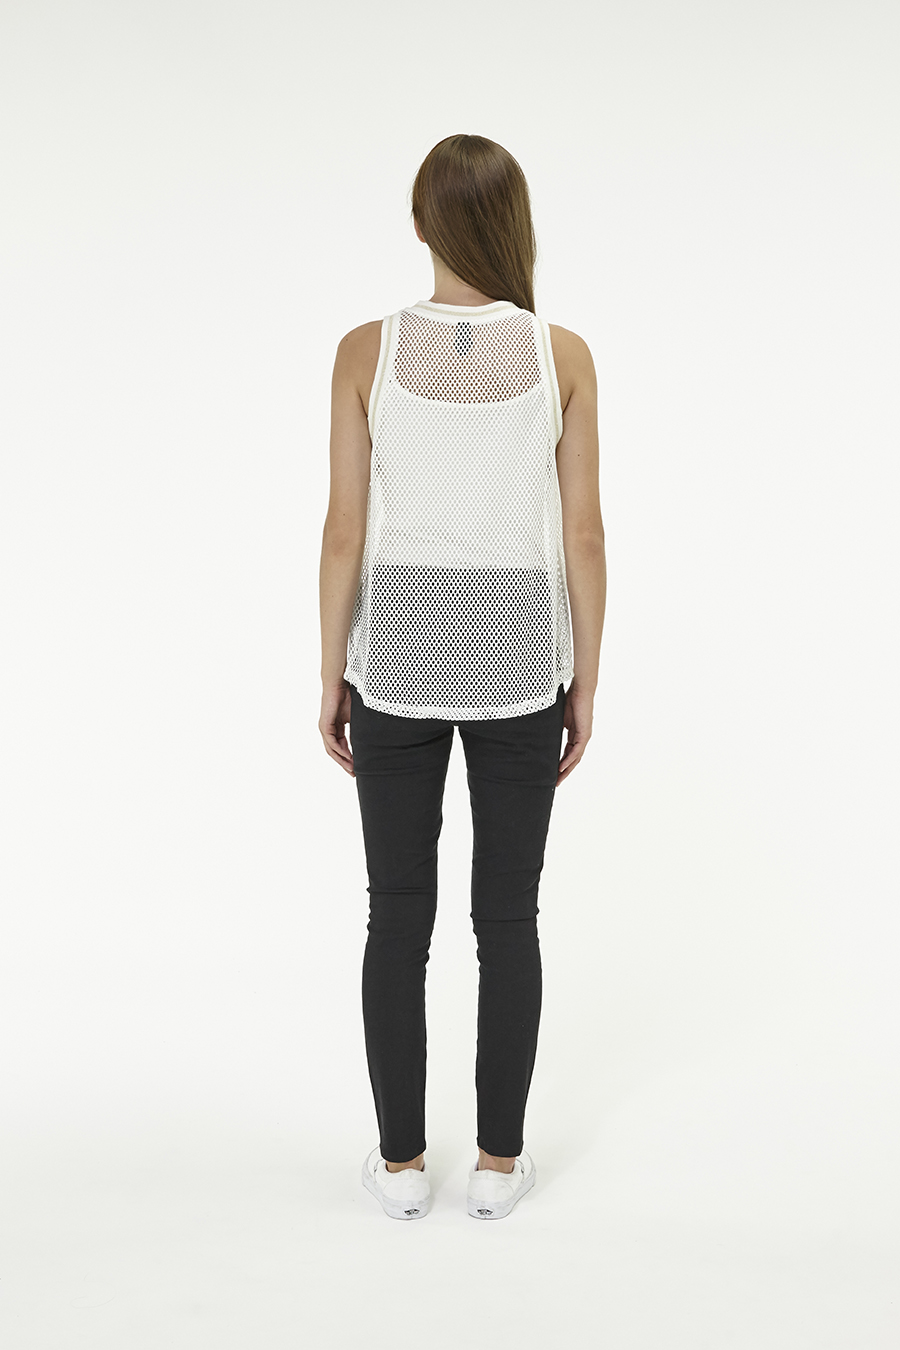 Huffer_Q3-16_W-Two-Love-Mesh-Tank_White-03